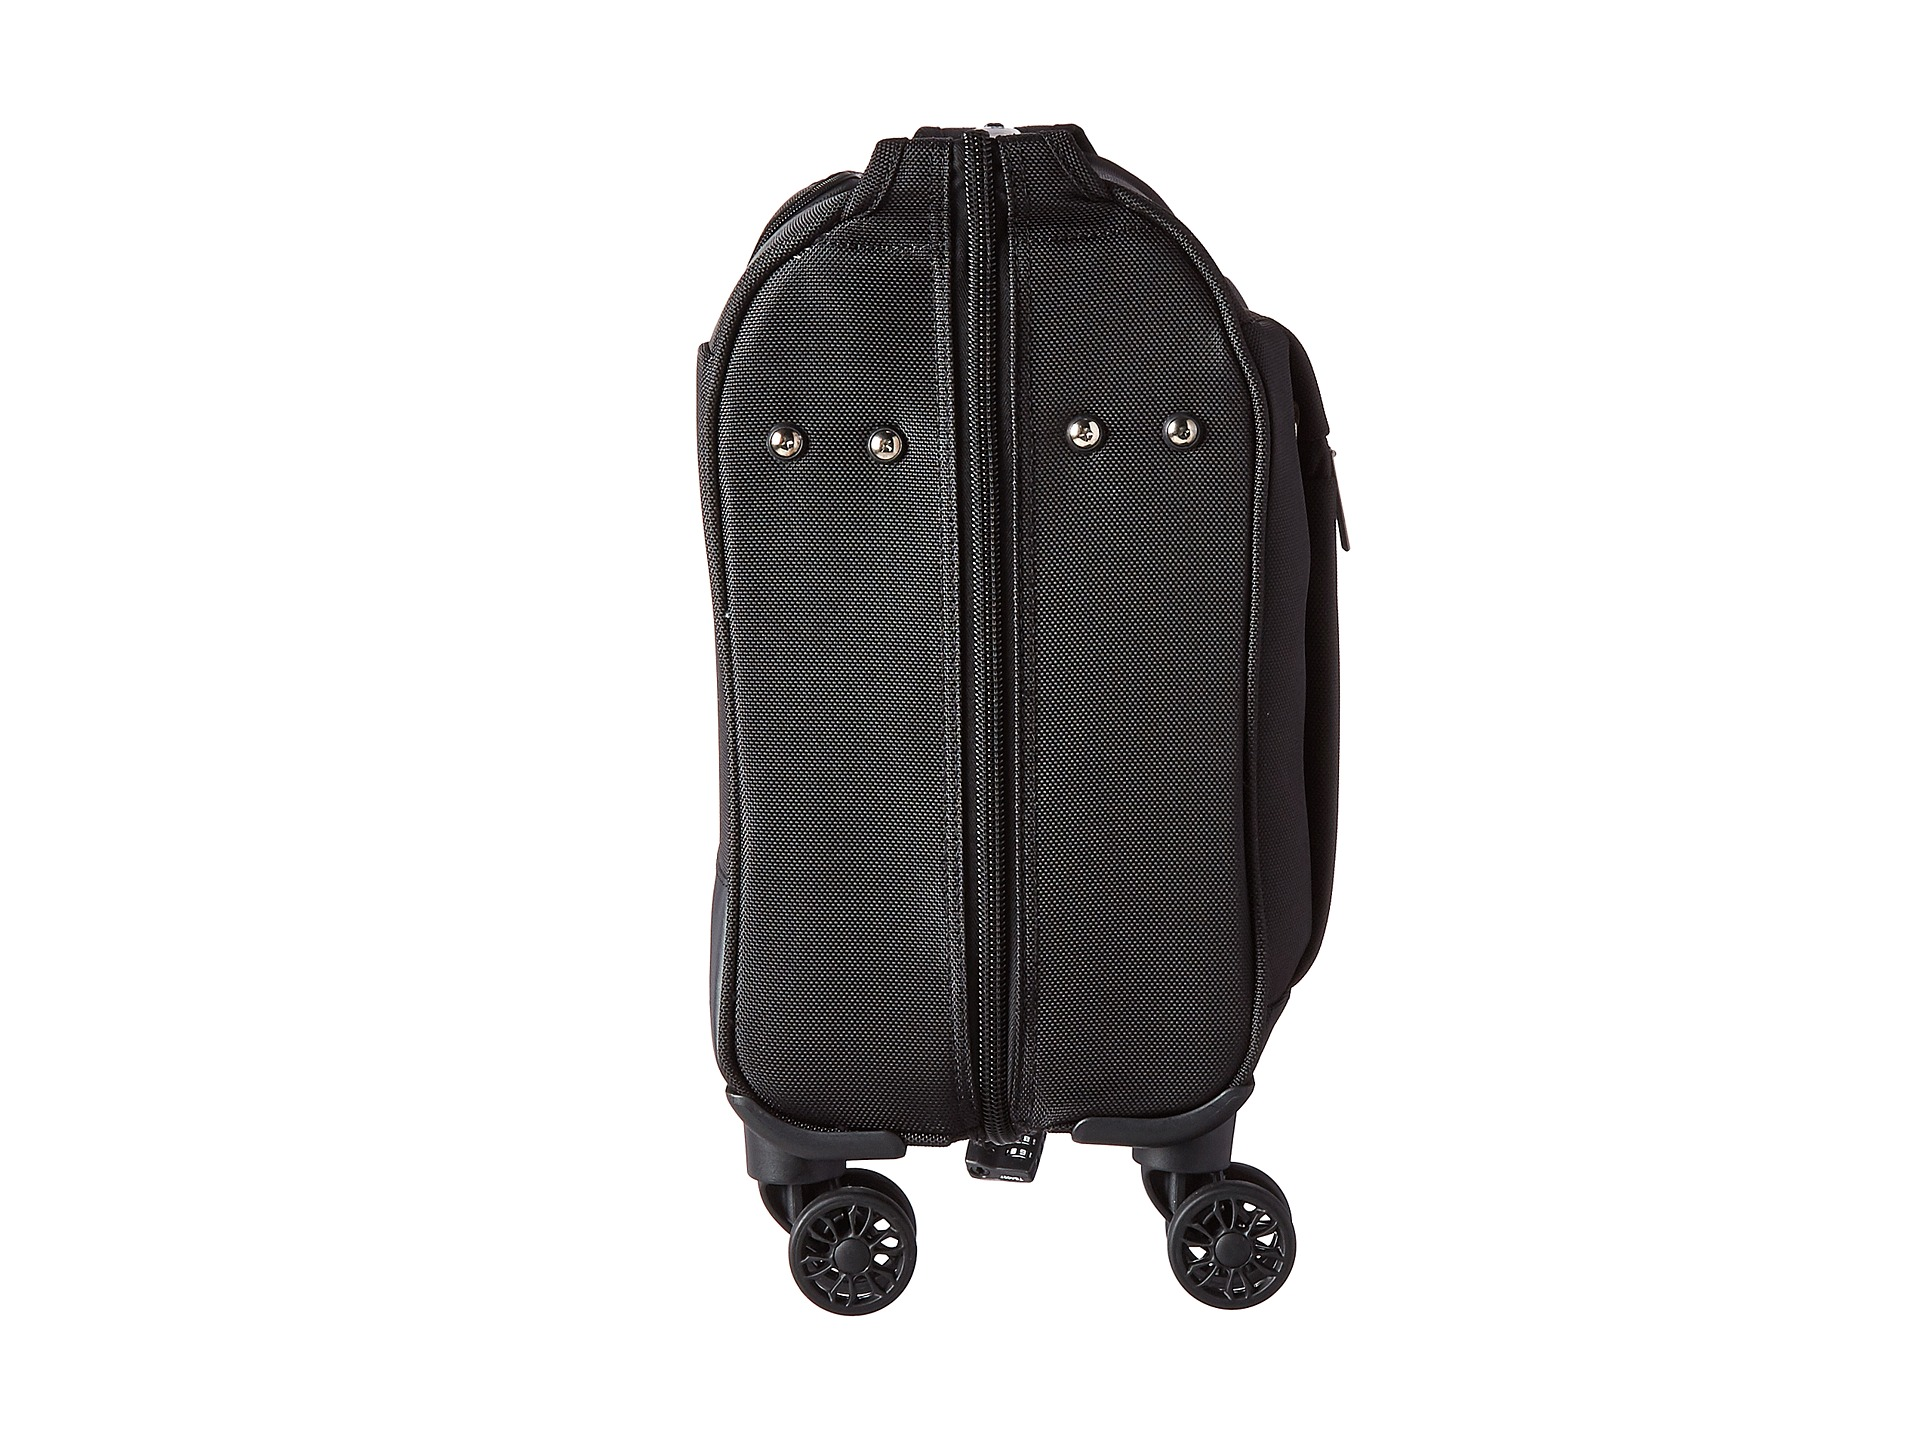 Delsey montmartre carry on spinner trolley garment bag for Wedding dress garment bag for plane